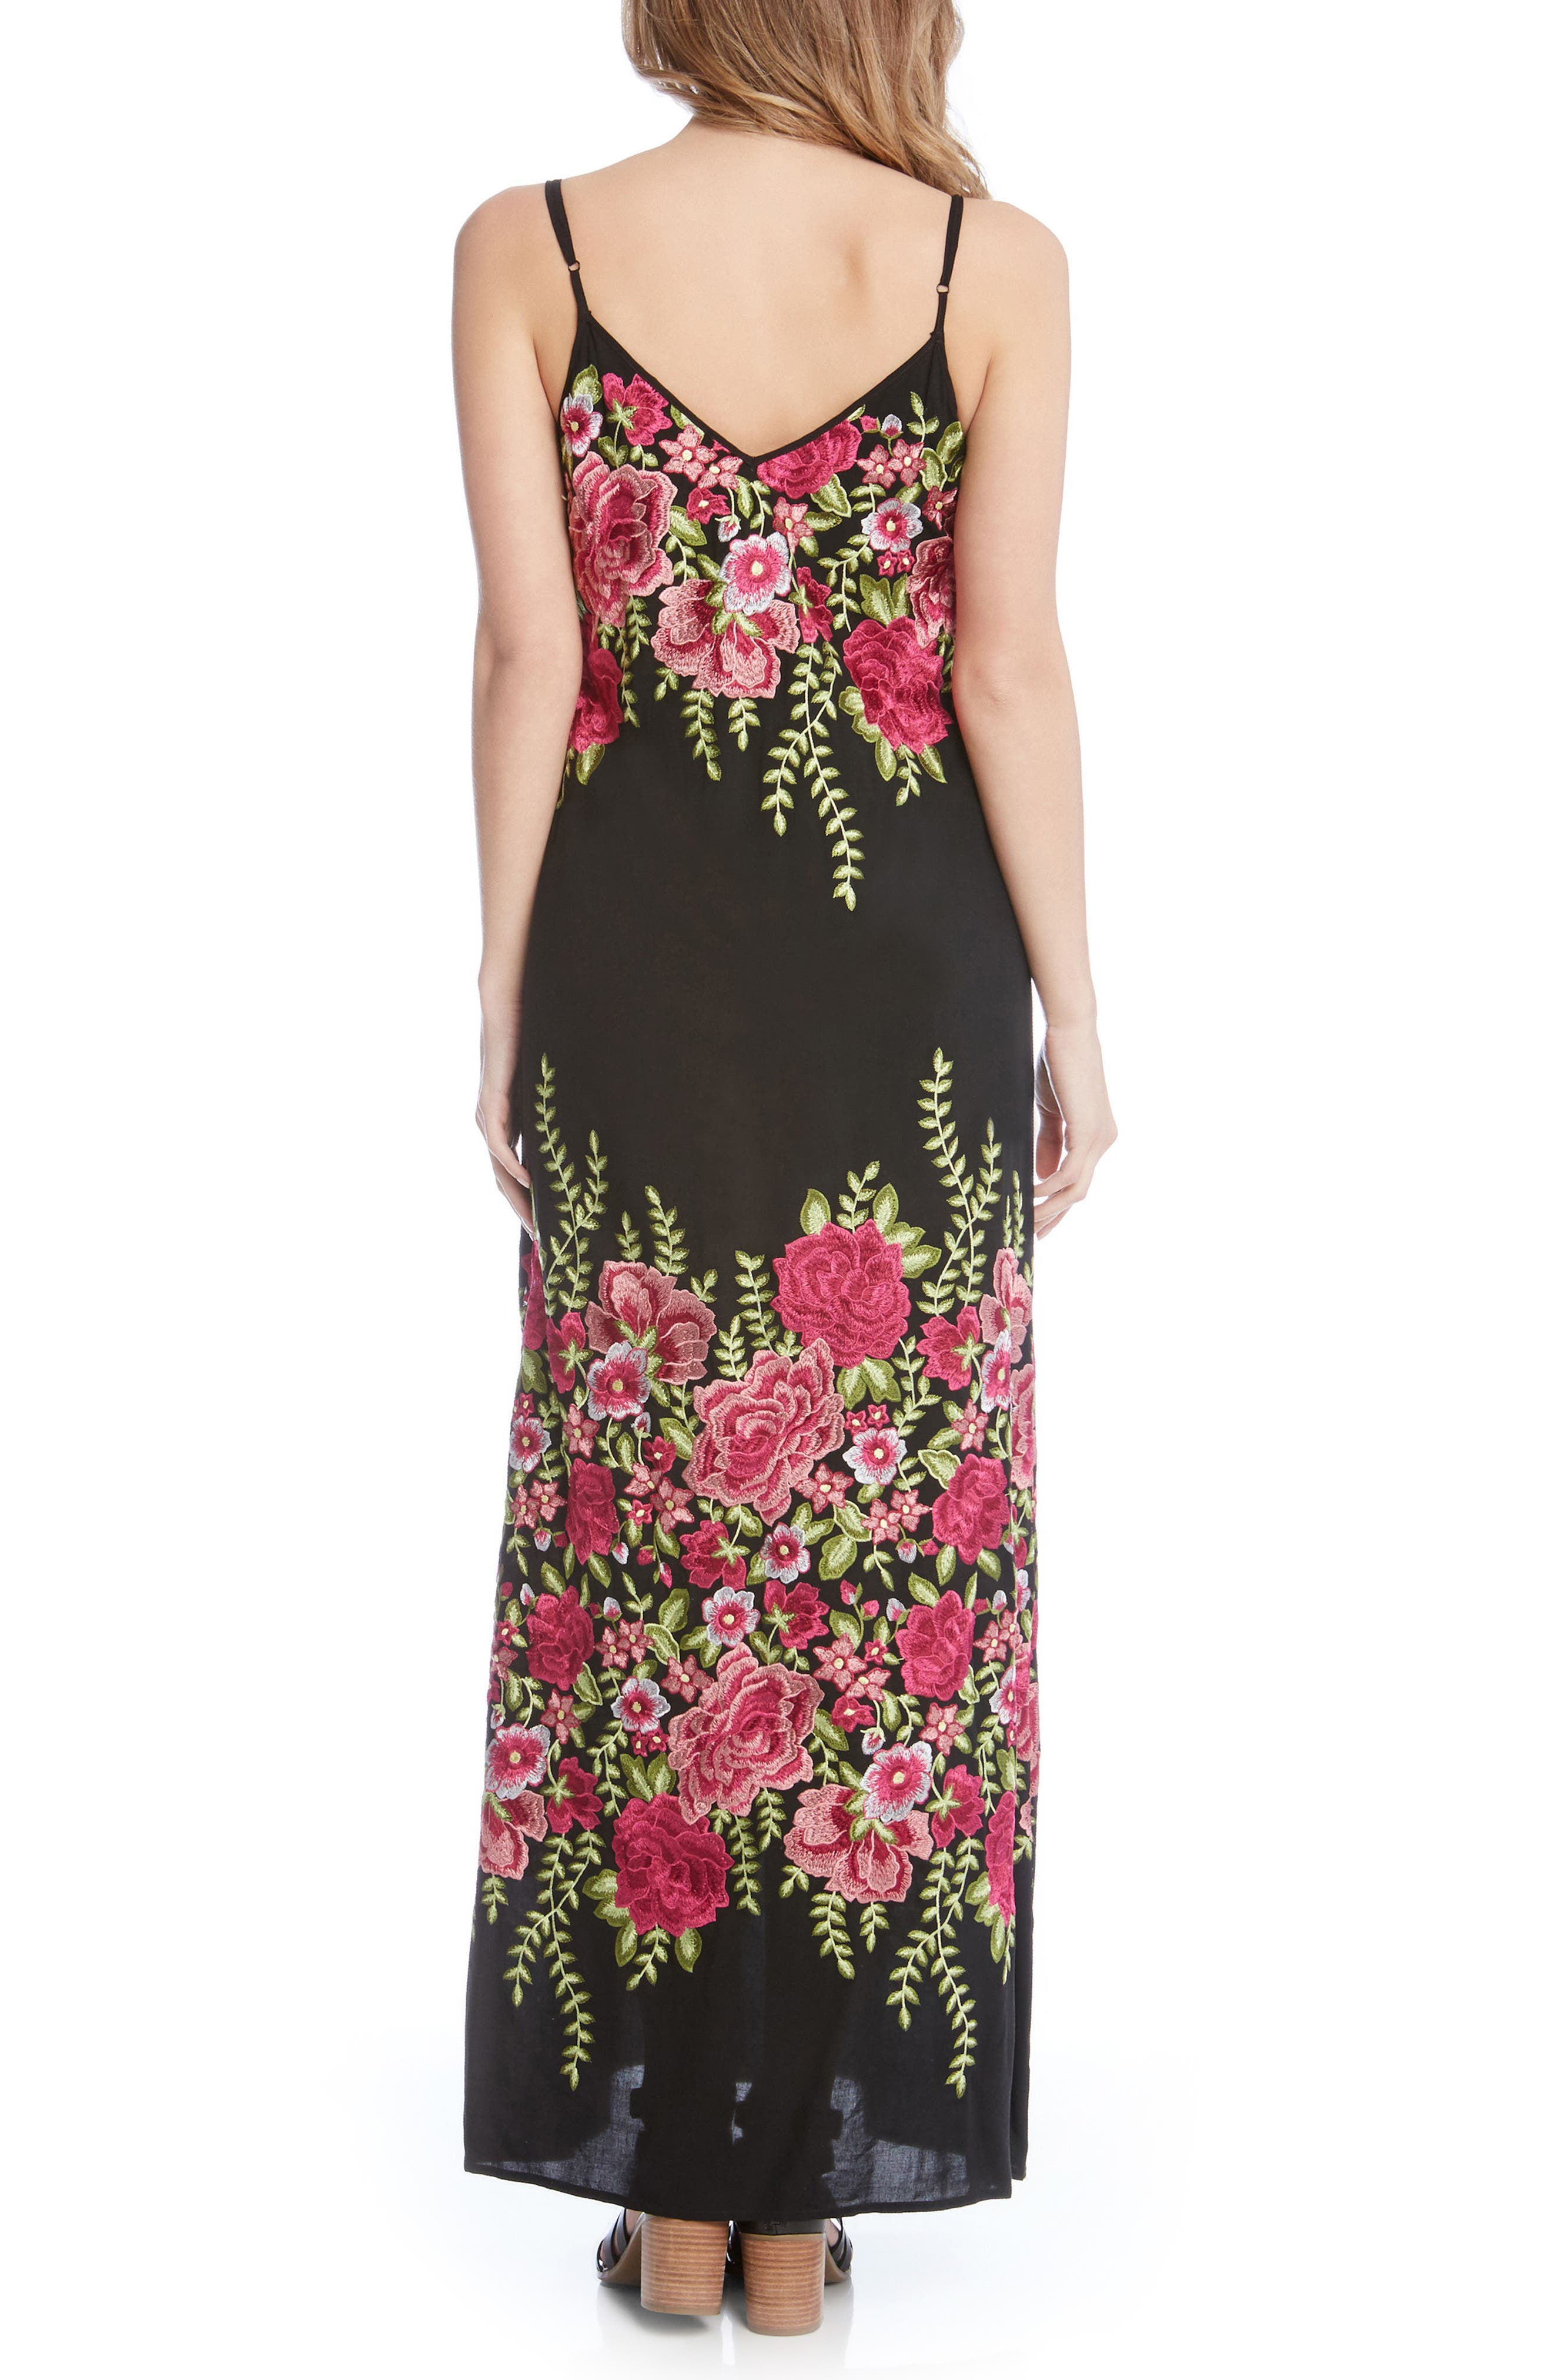 Floral Embroidered Maxi Dress,                             Alternate thumbnail 3, color,                             Black/ Embroidery